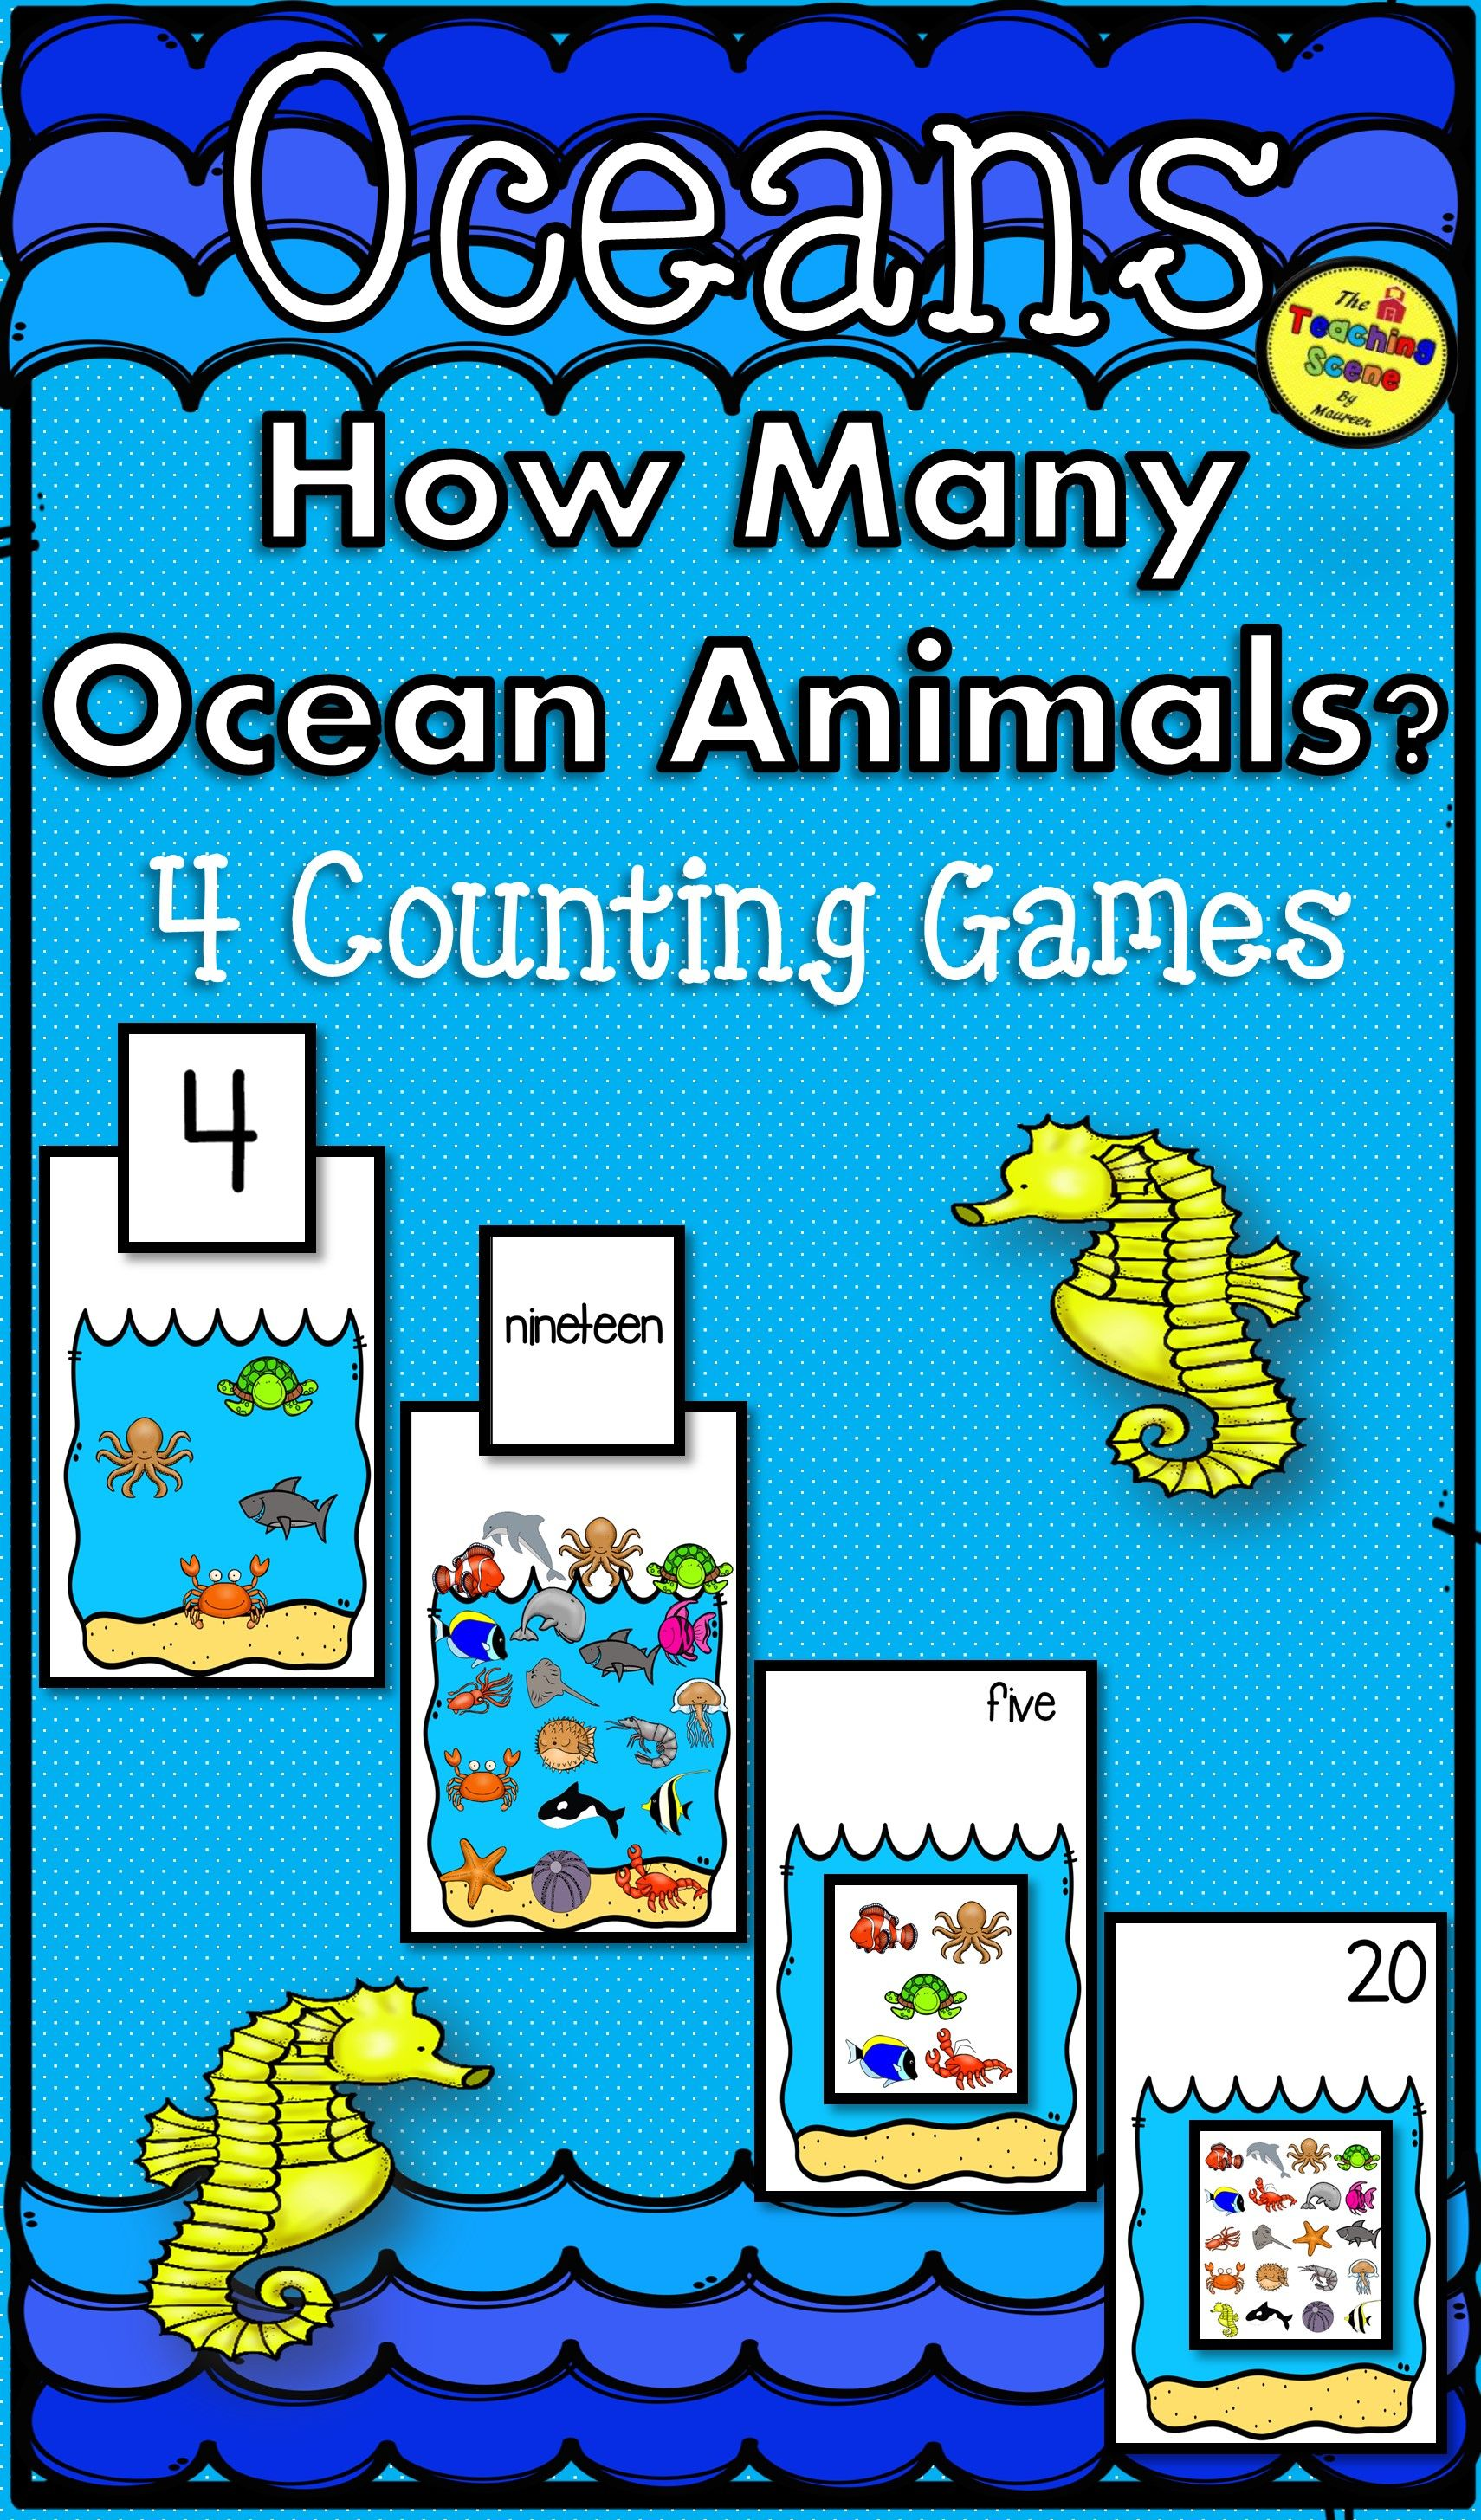 Ocean Counting Games How Many Ocean Animals